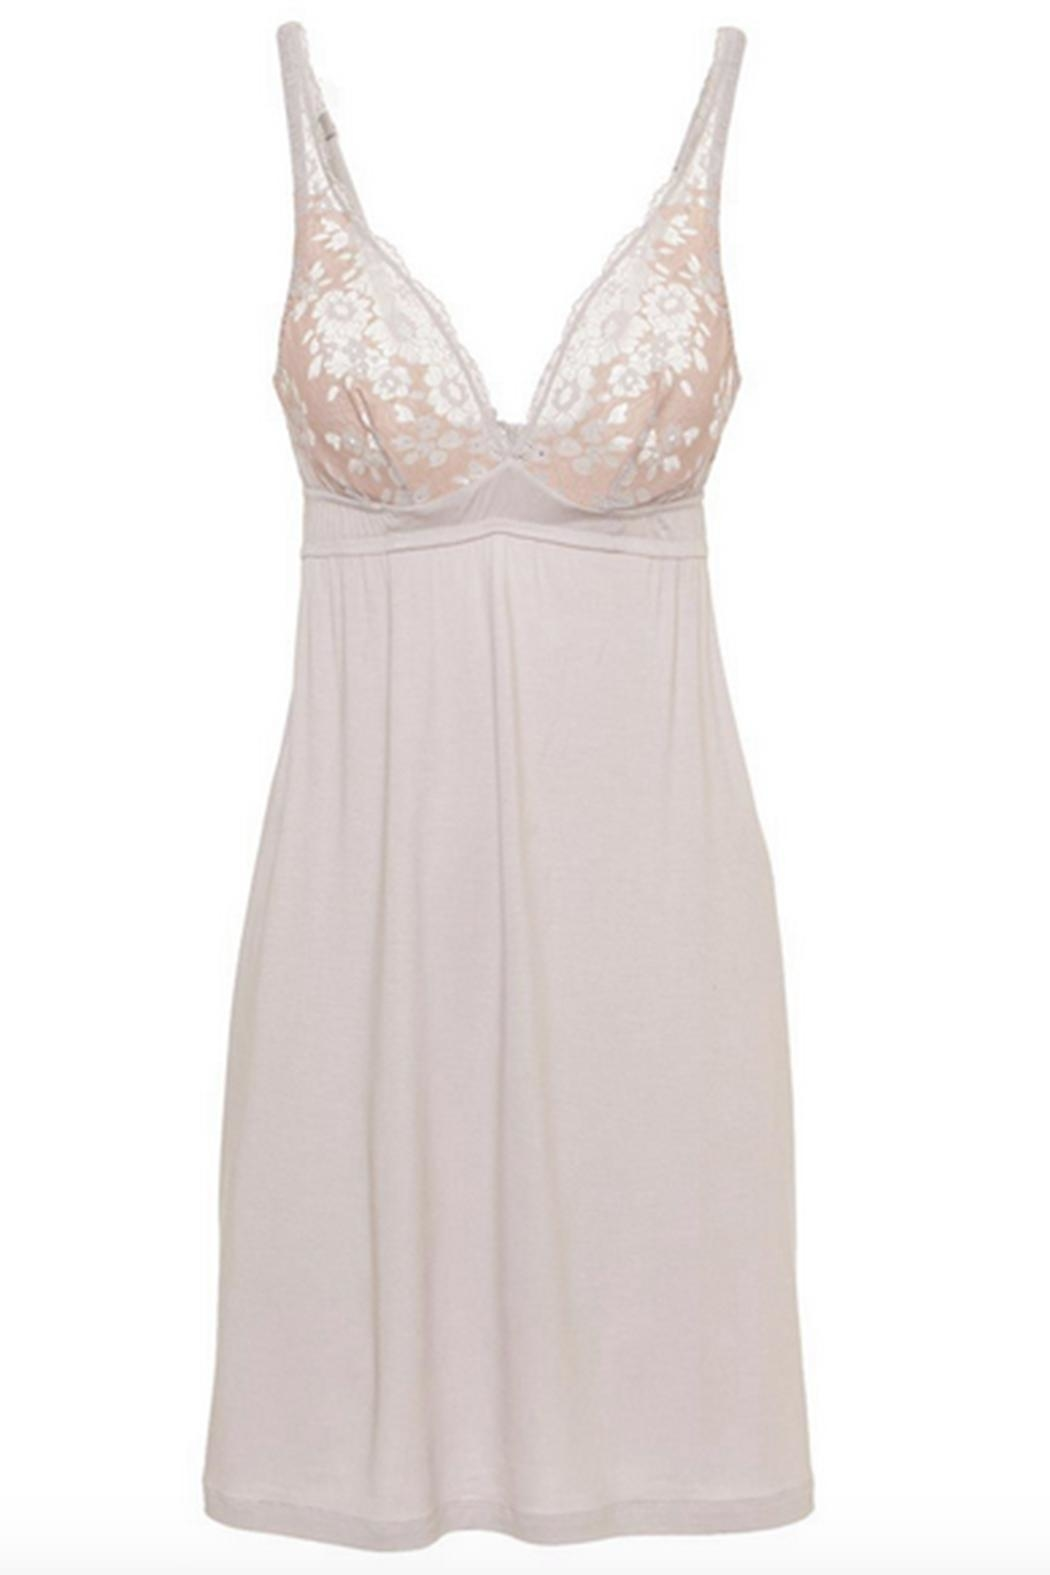 Cosabella Lace Cup Chemise - Front Full Image